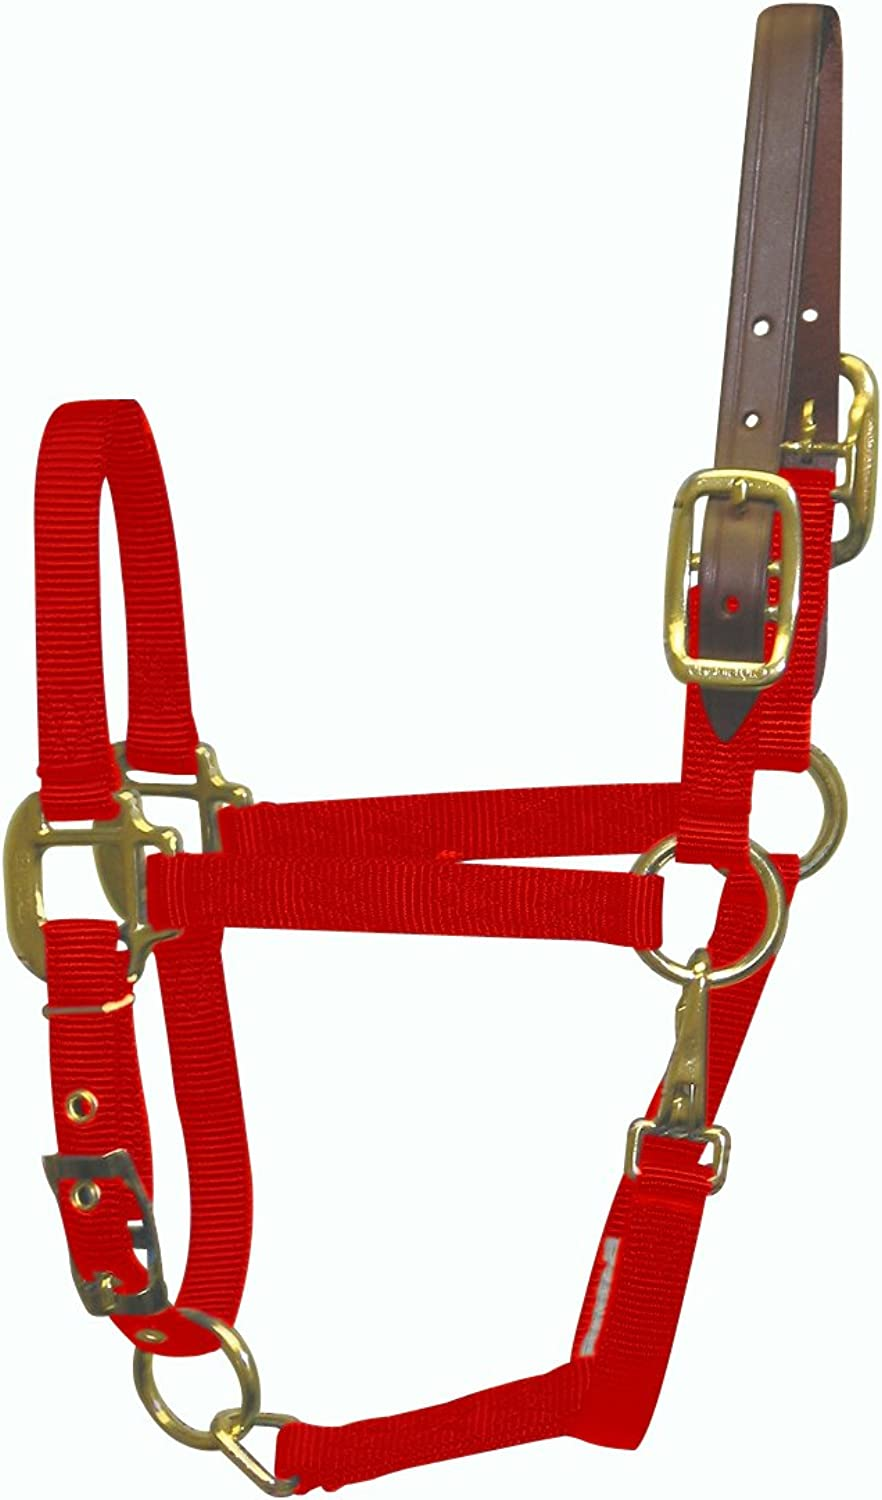 Hamilton Halter Company Adjustable Halter with Leather Headpole